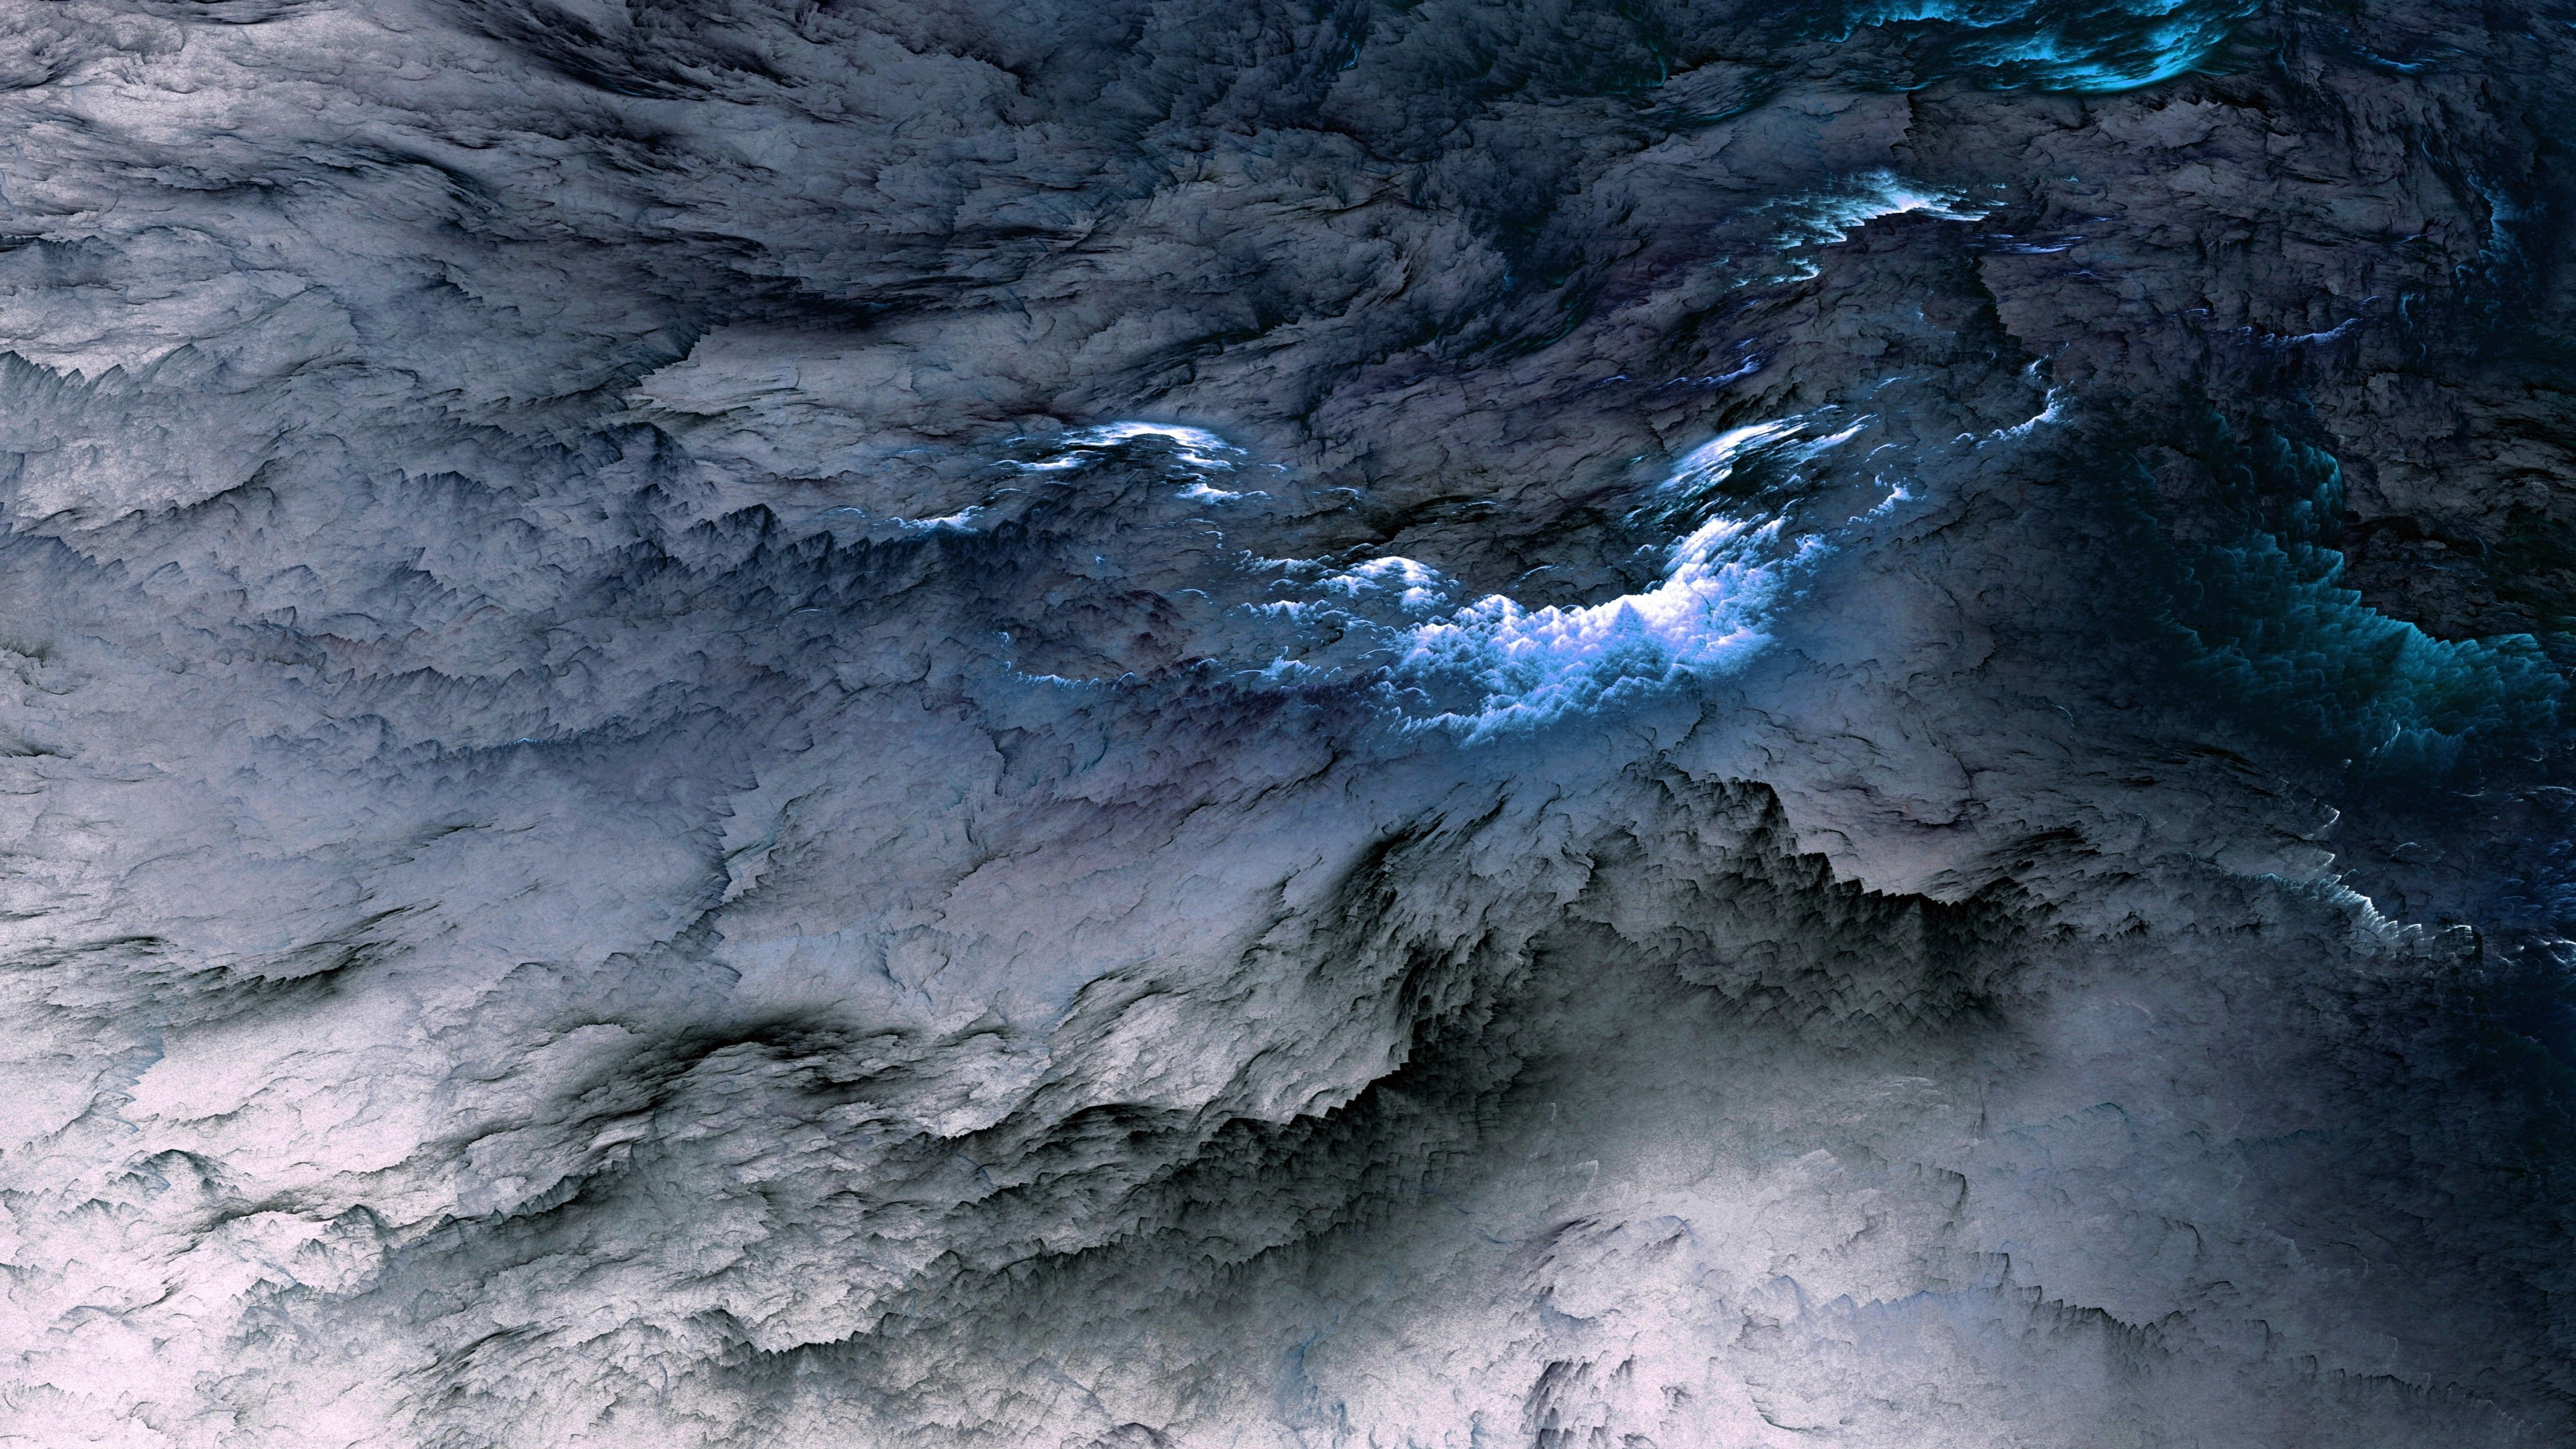 Clouds 5k 4k Wallpaper 8k Abstract Blue Live Wallpaper Live Photo 5k Wallpaper Hdwallpaper Desktop Cloud Wallpaper Abstract Cloud Clouds